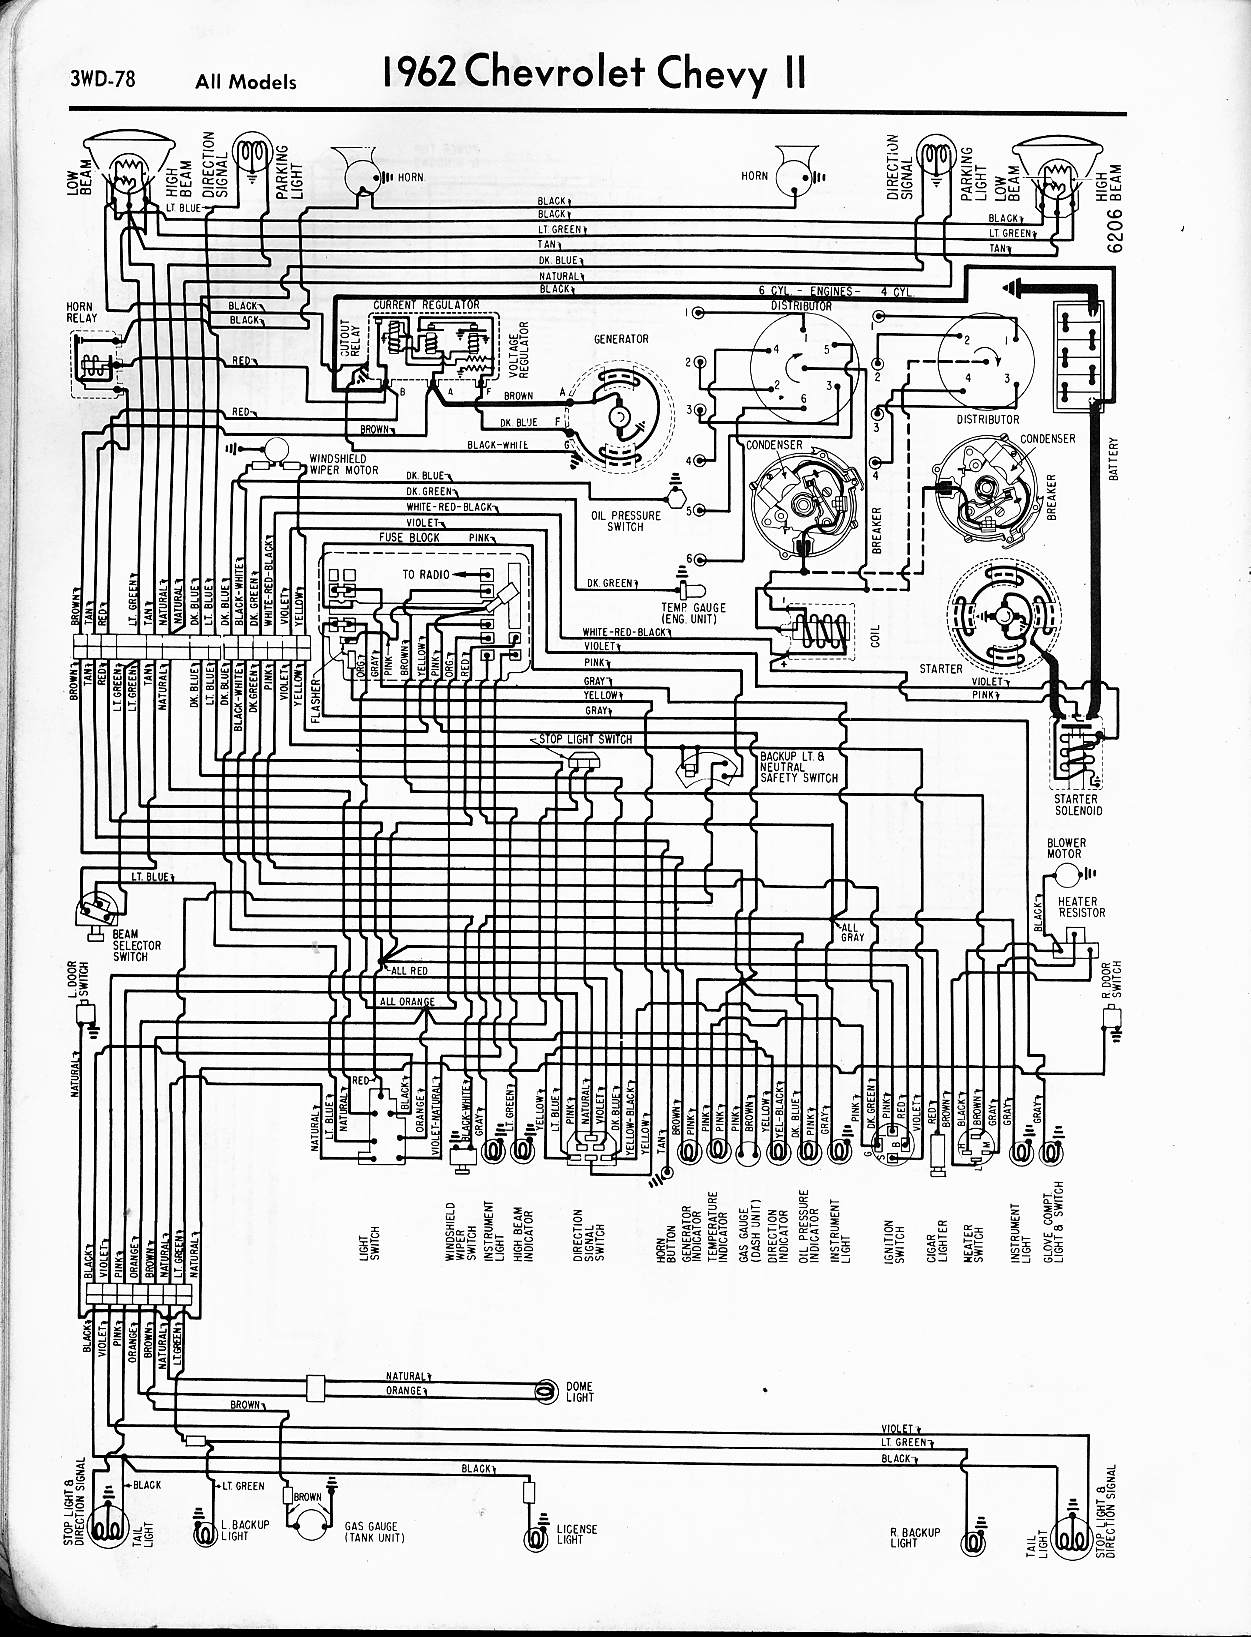 1965 Buick Skylark Fuse Box Diagram Schematics Wiring Diagrams 1993 Camaro Images Gallery